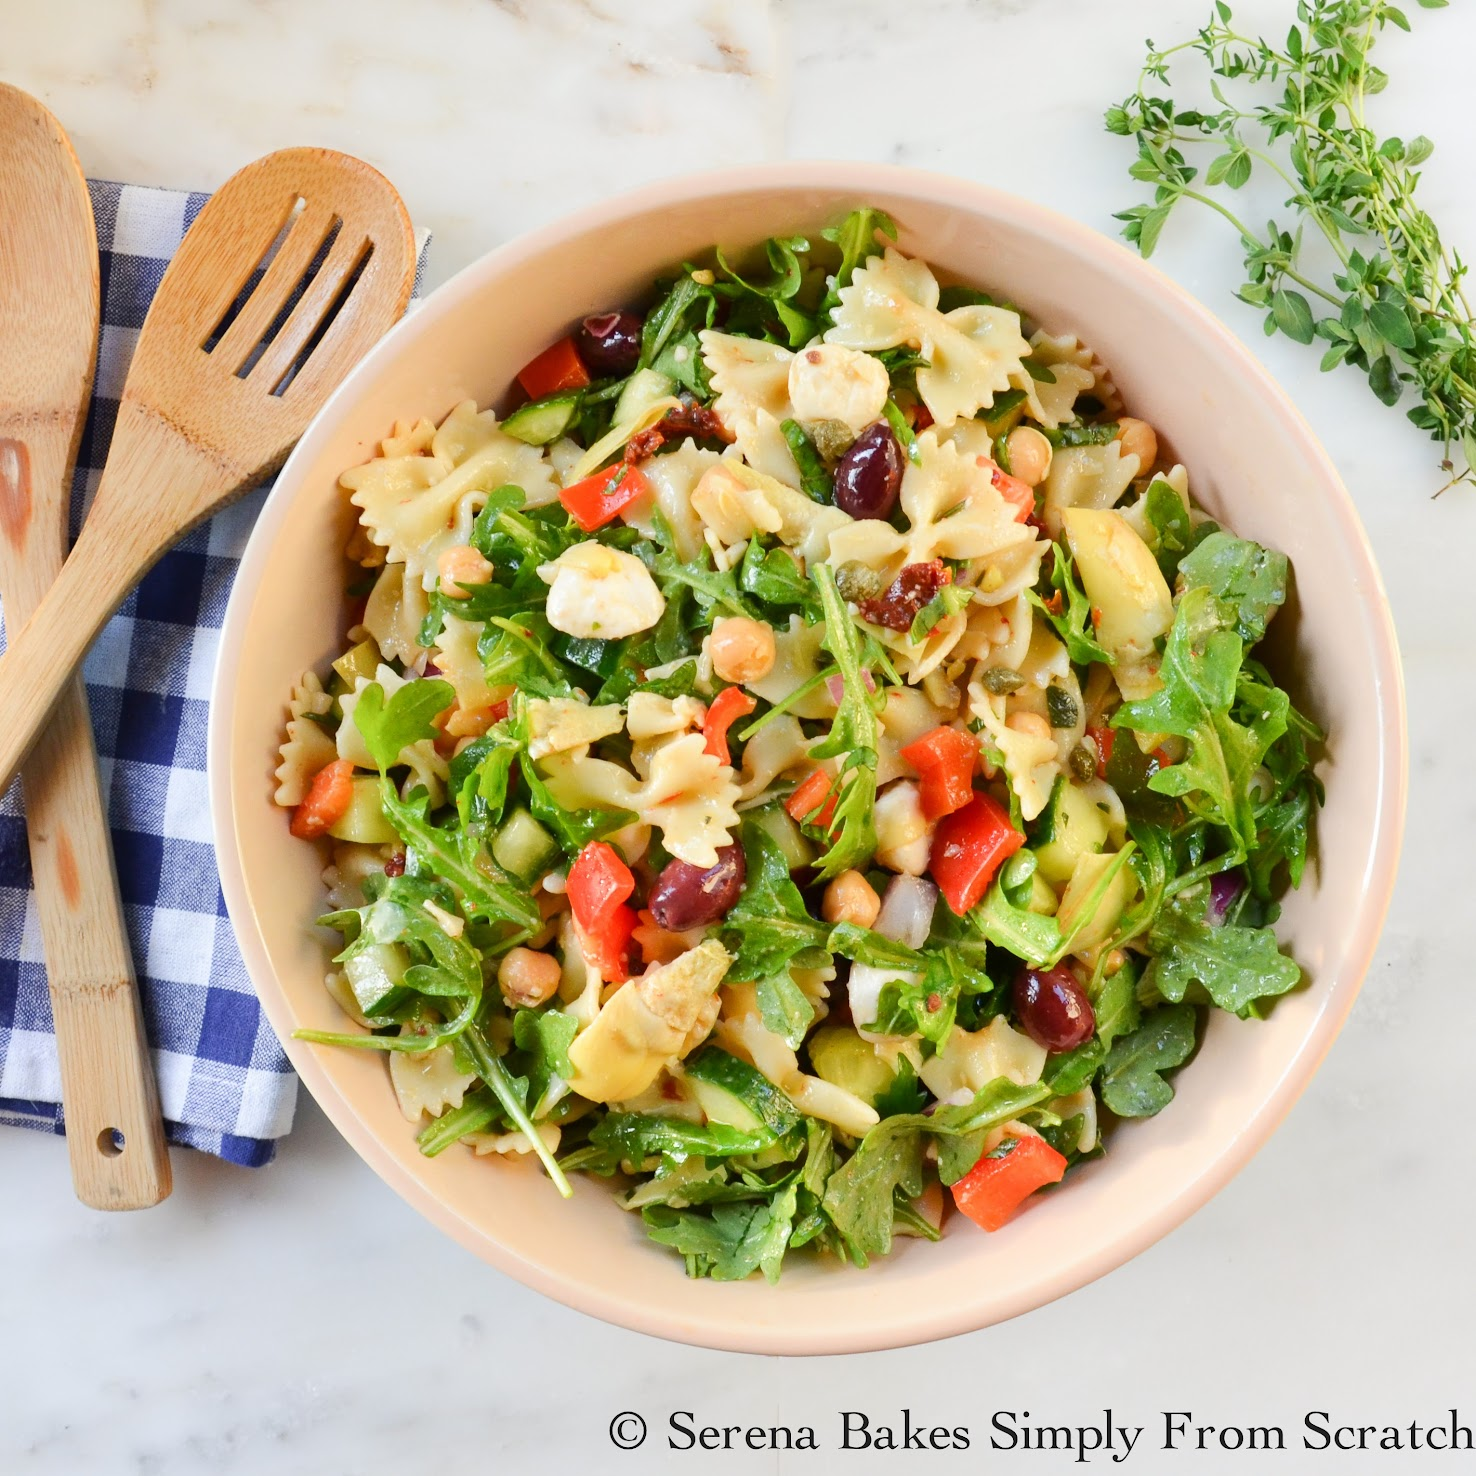 Mediterranean Pasta Salad is filled with artichoke hearts, capers, and sundries tomatoes! A must make!